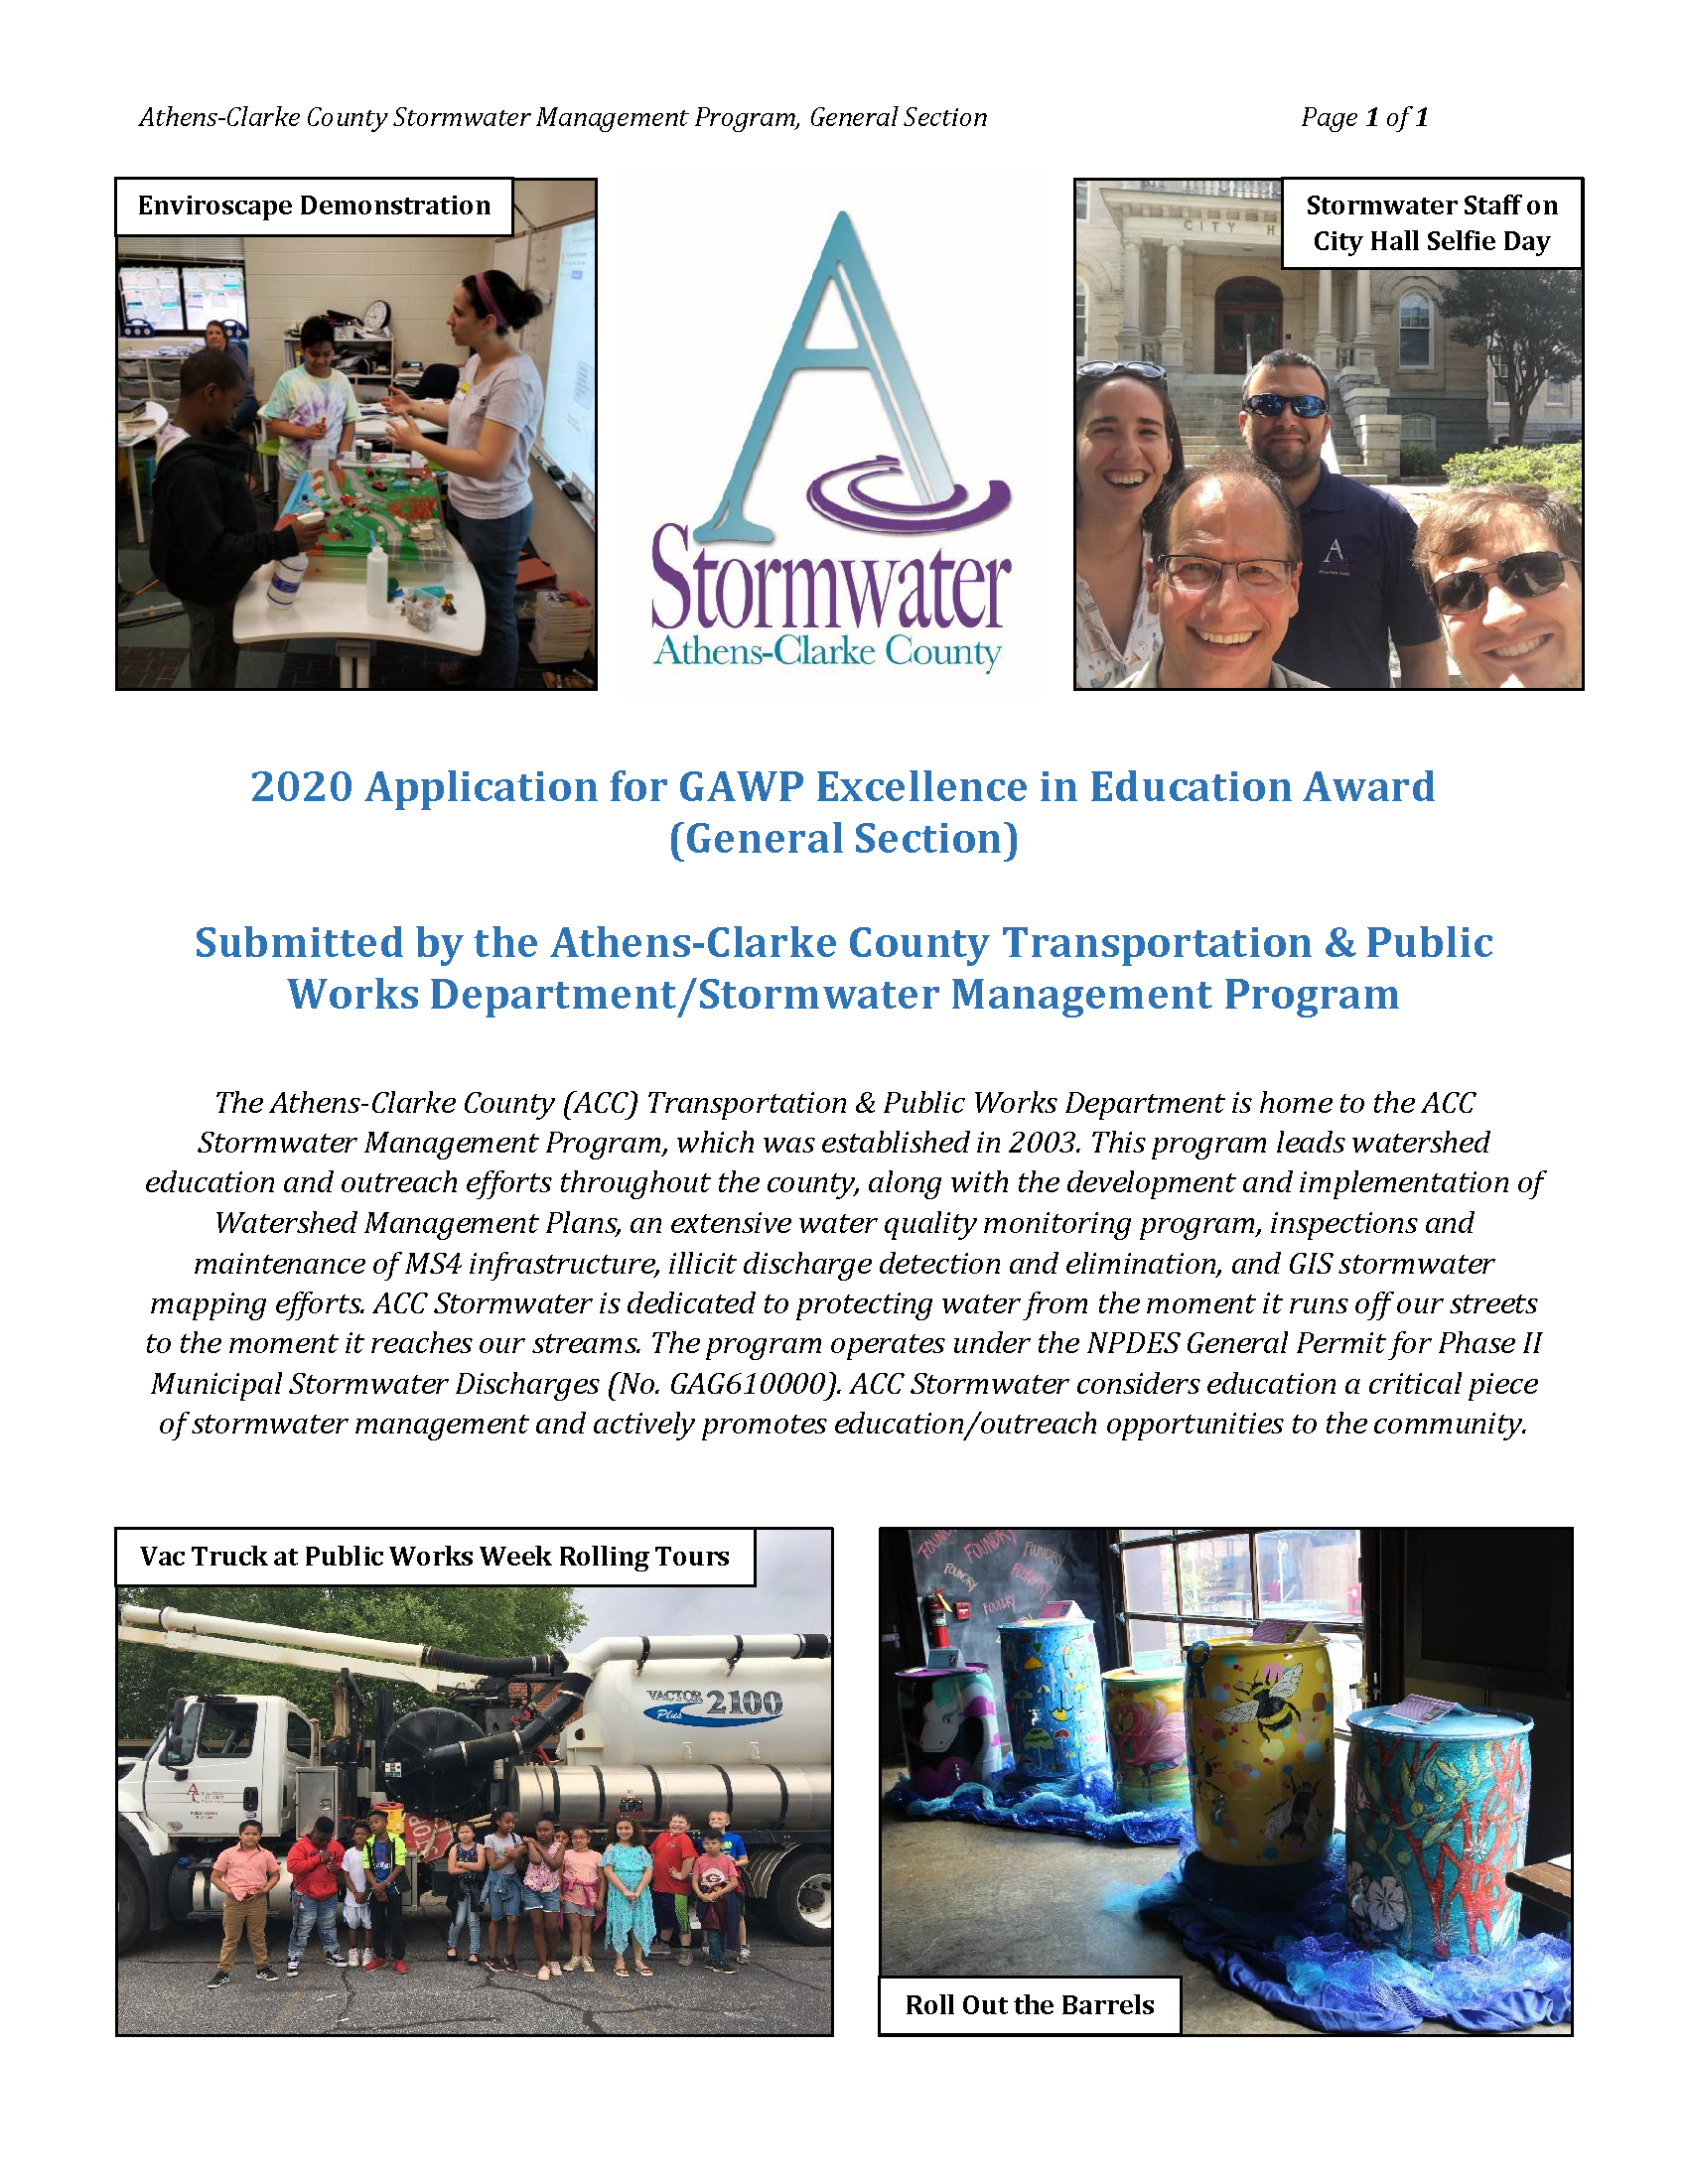 ACC Stormwater GAWP Award App Cover Page 1